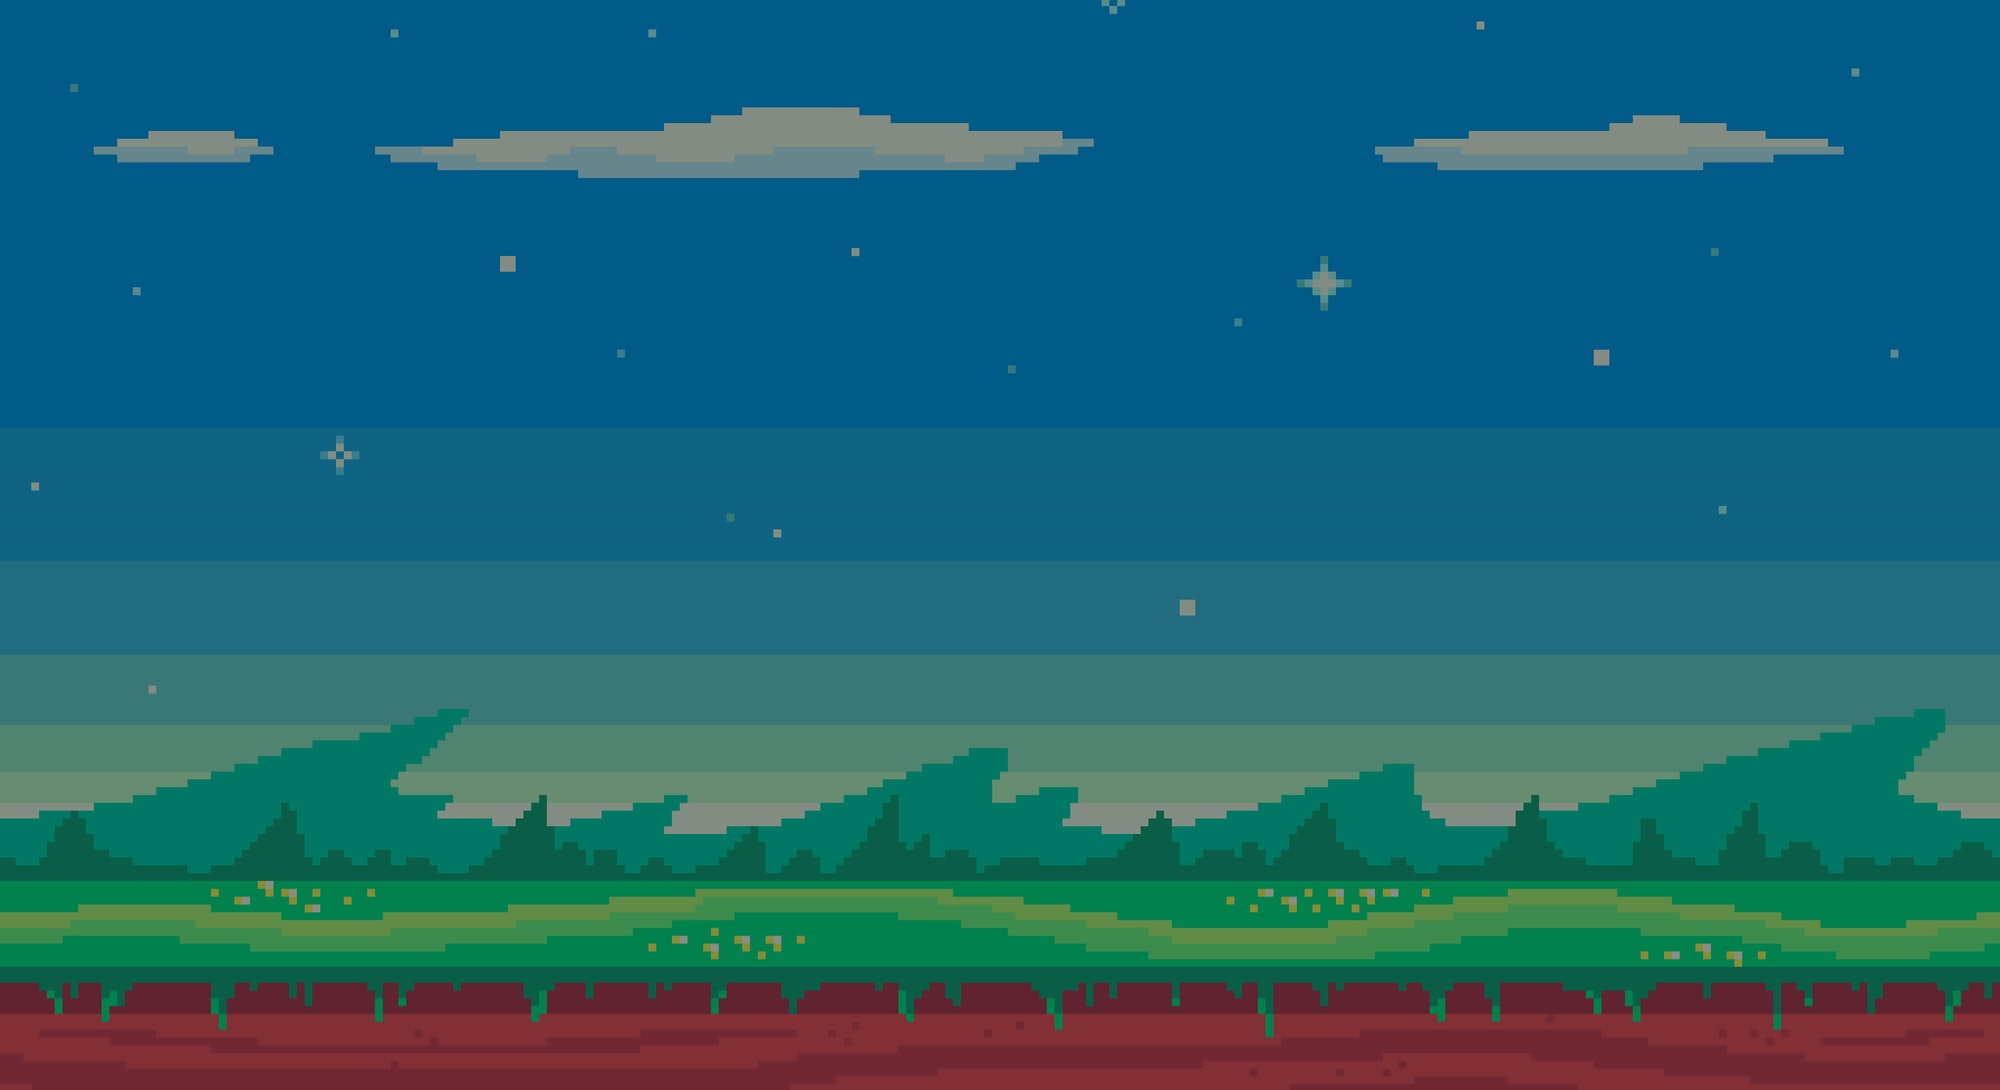 Cute meadow area with clouds, stars and mountains. Pixel art game location. Seamless vector background.